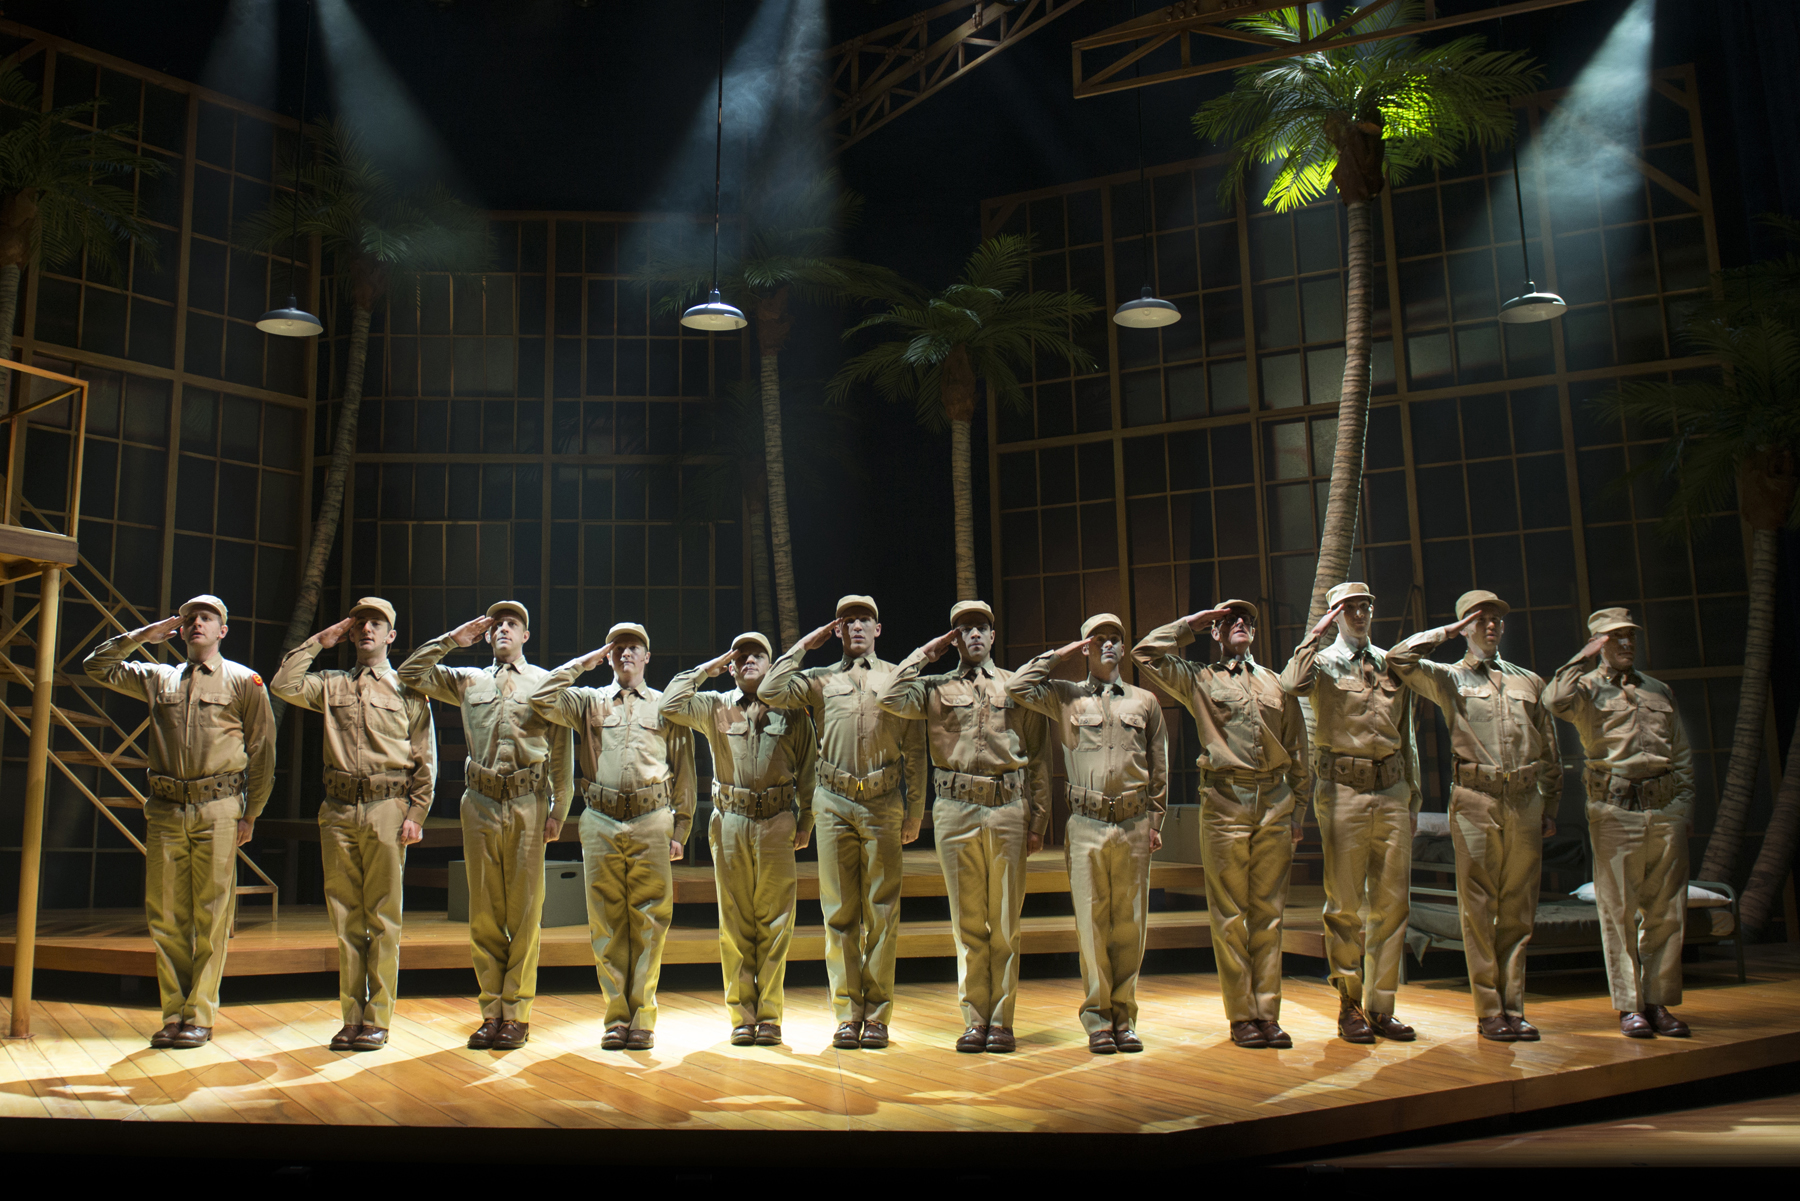 BWW Review: FROM HERE TO ETERNITY at Ogunquit Playhouse